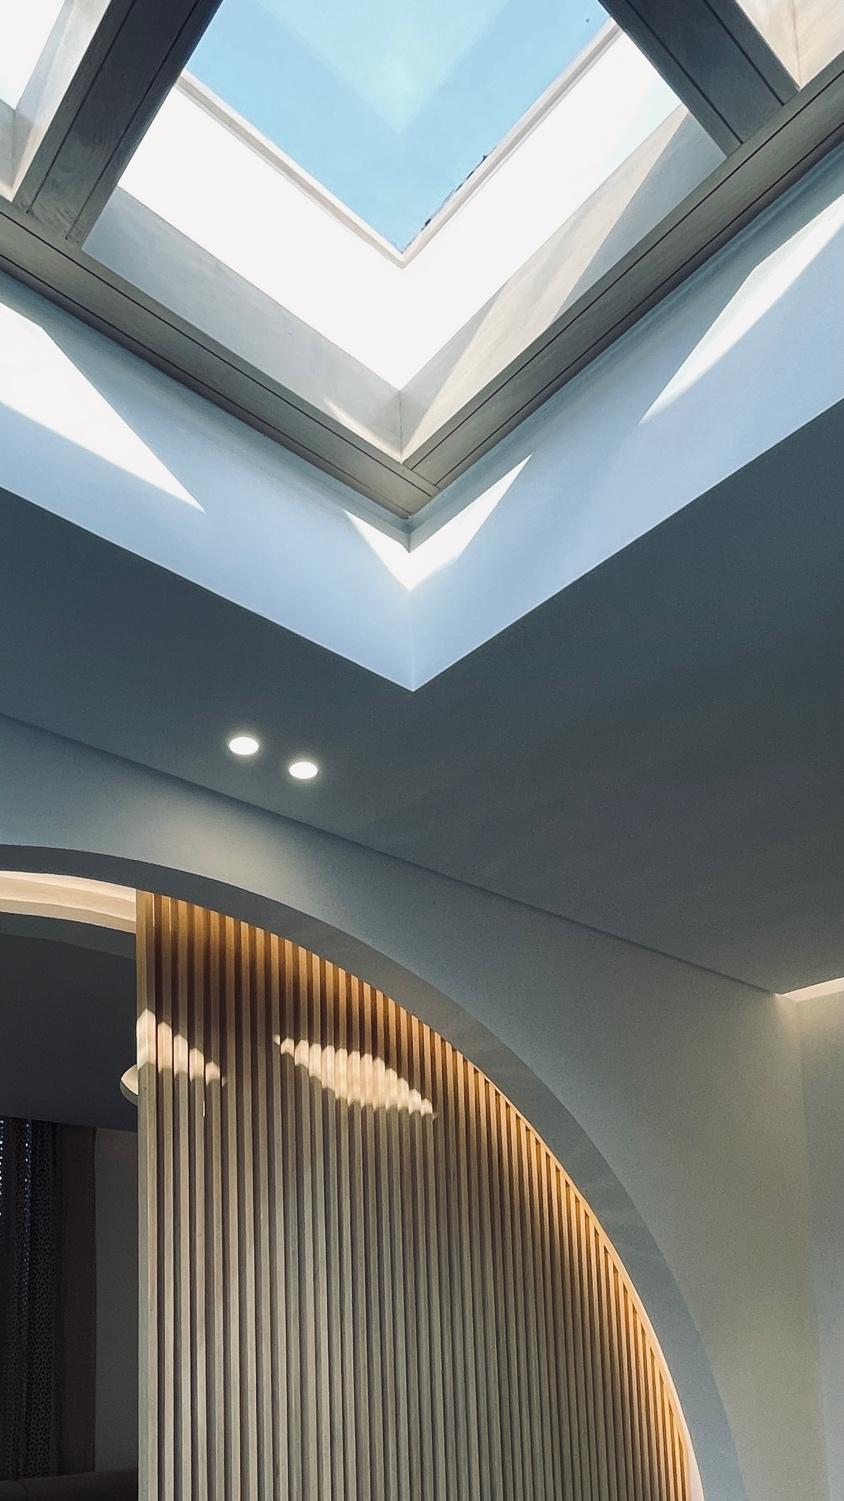 A picture containing ceiling, indoor, window  Description automatically generated